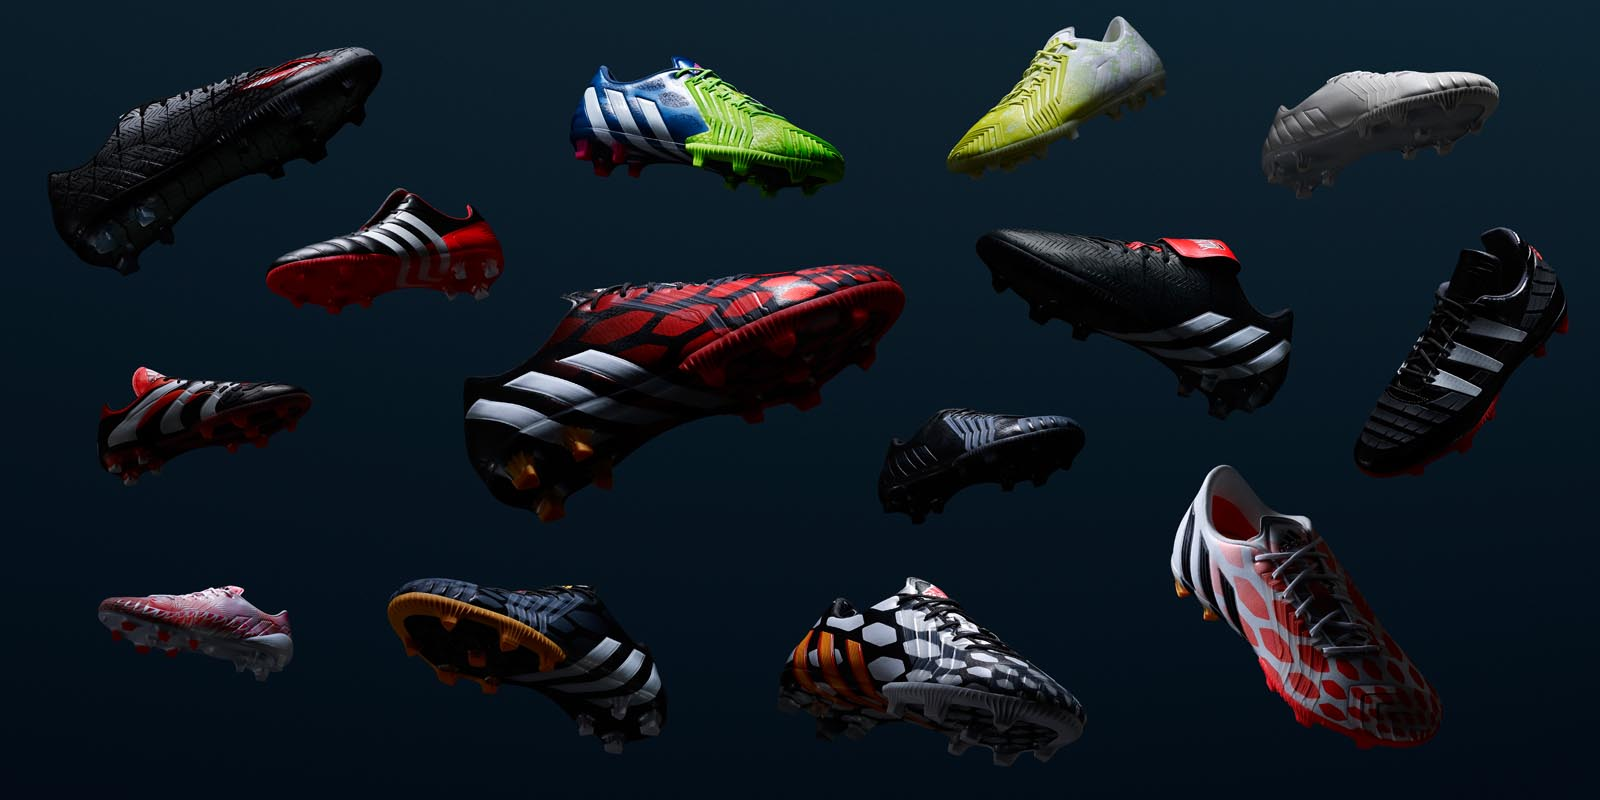 Adidas Predator Soccer Shoes Is Made Of